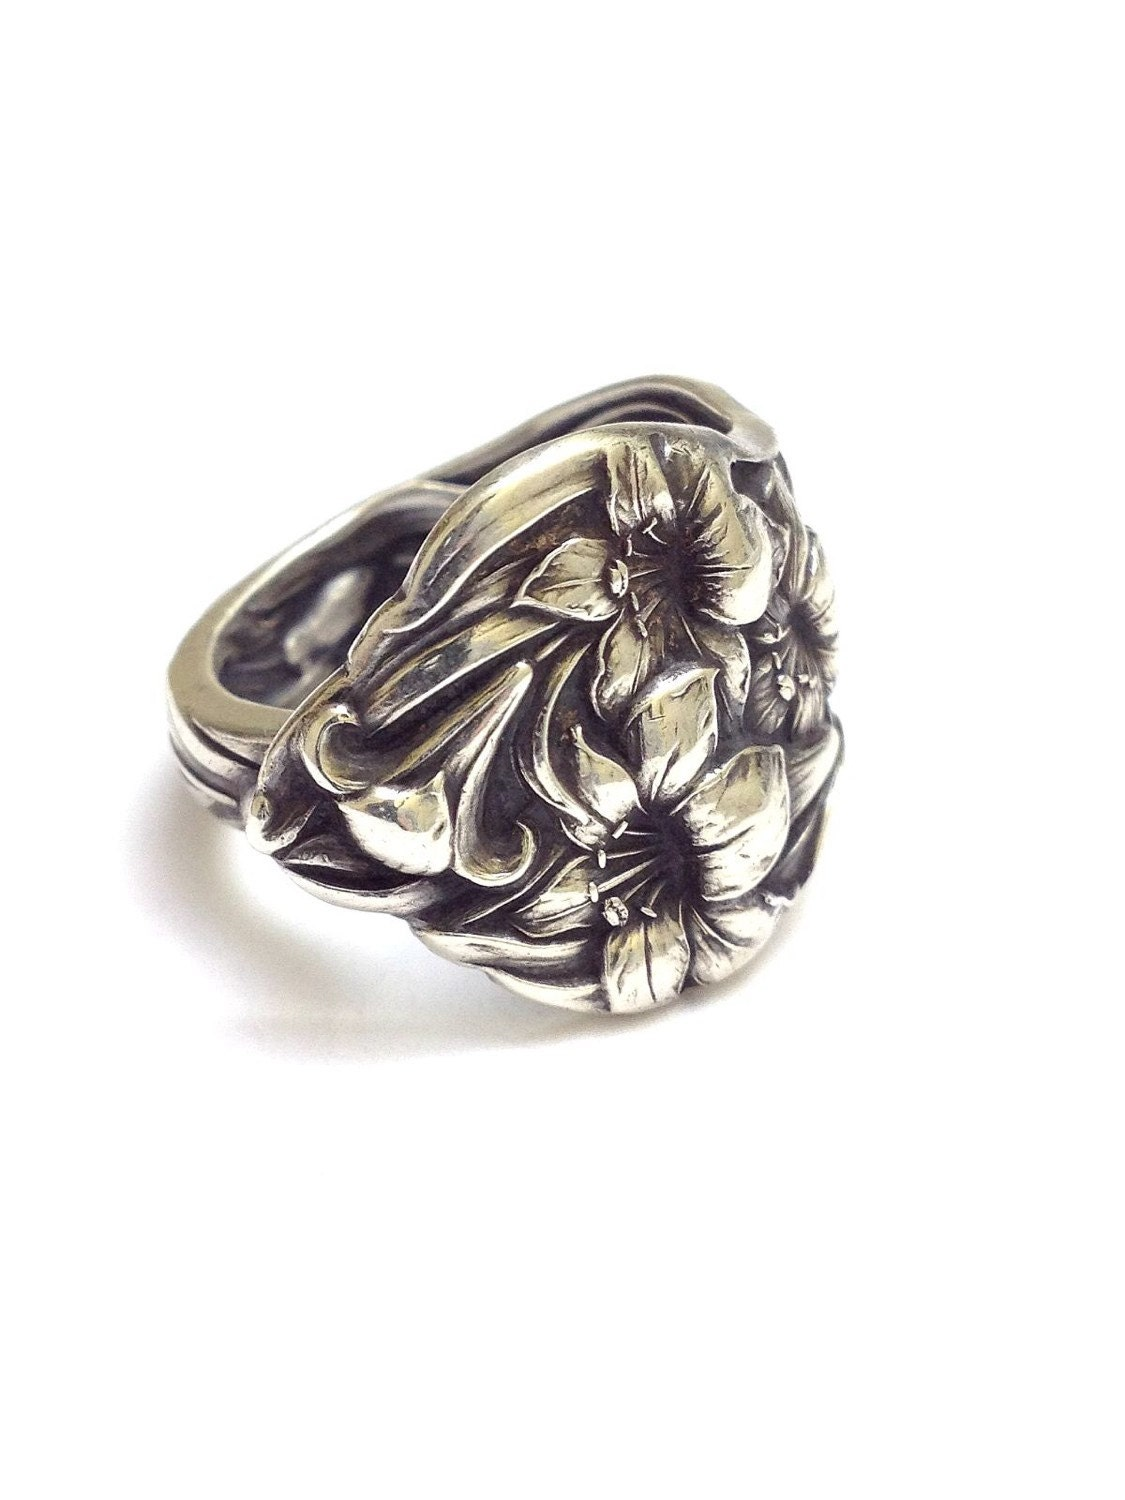 antique sterling silver spoon ring circa 1902 by cypressstudio